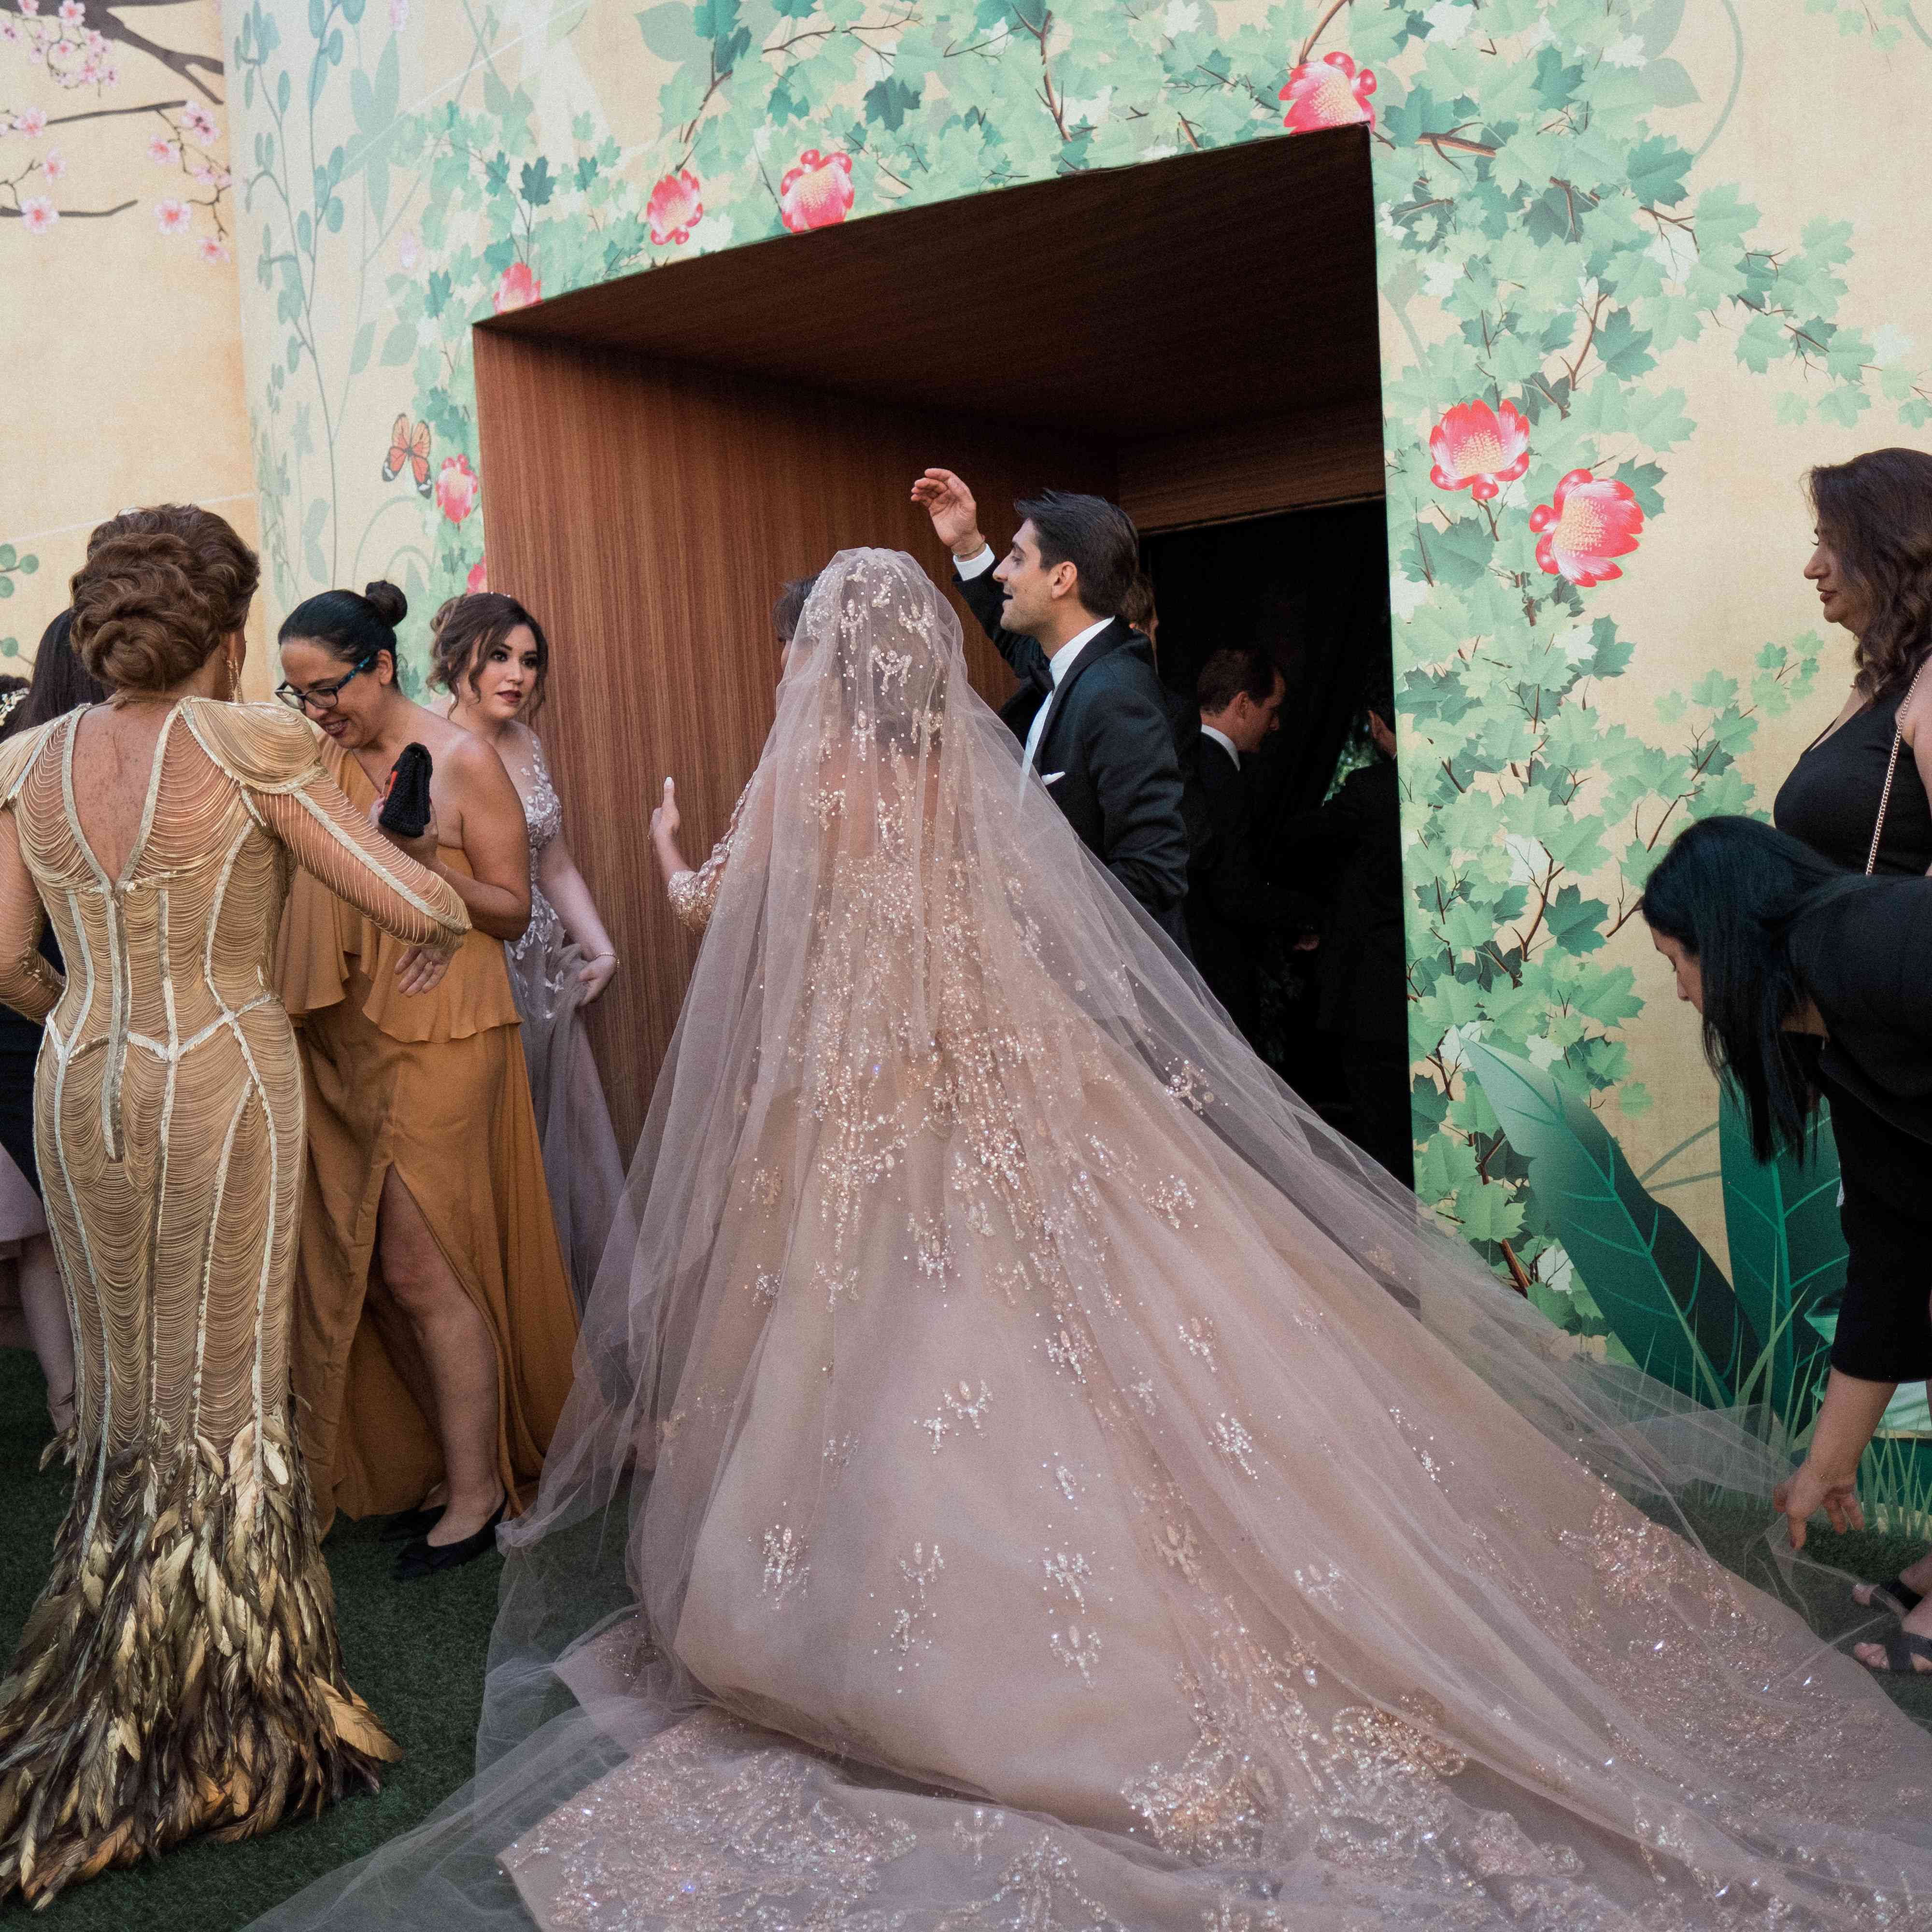 One Couple's Two Over-the-Top Weddings in Greece and Lebanon